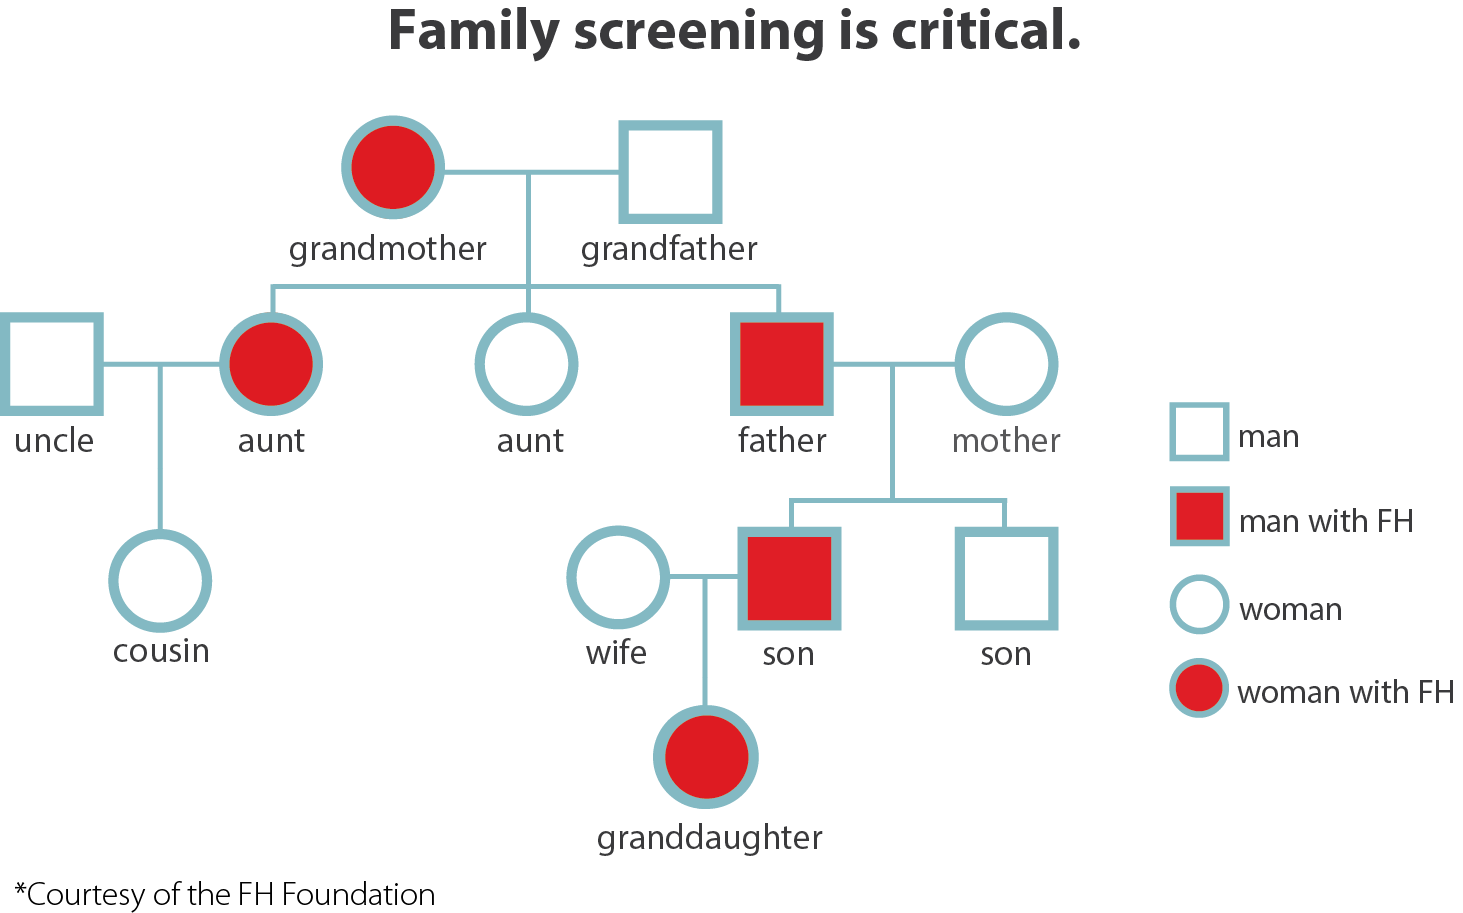 Family screening is critical